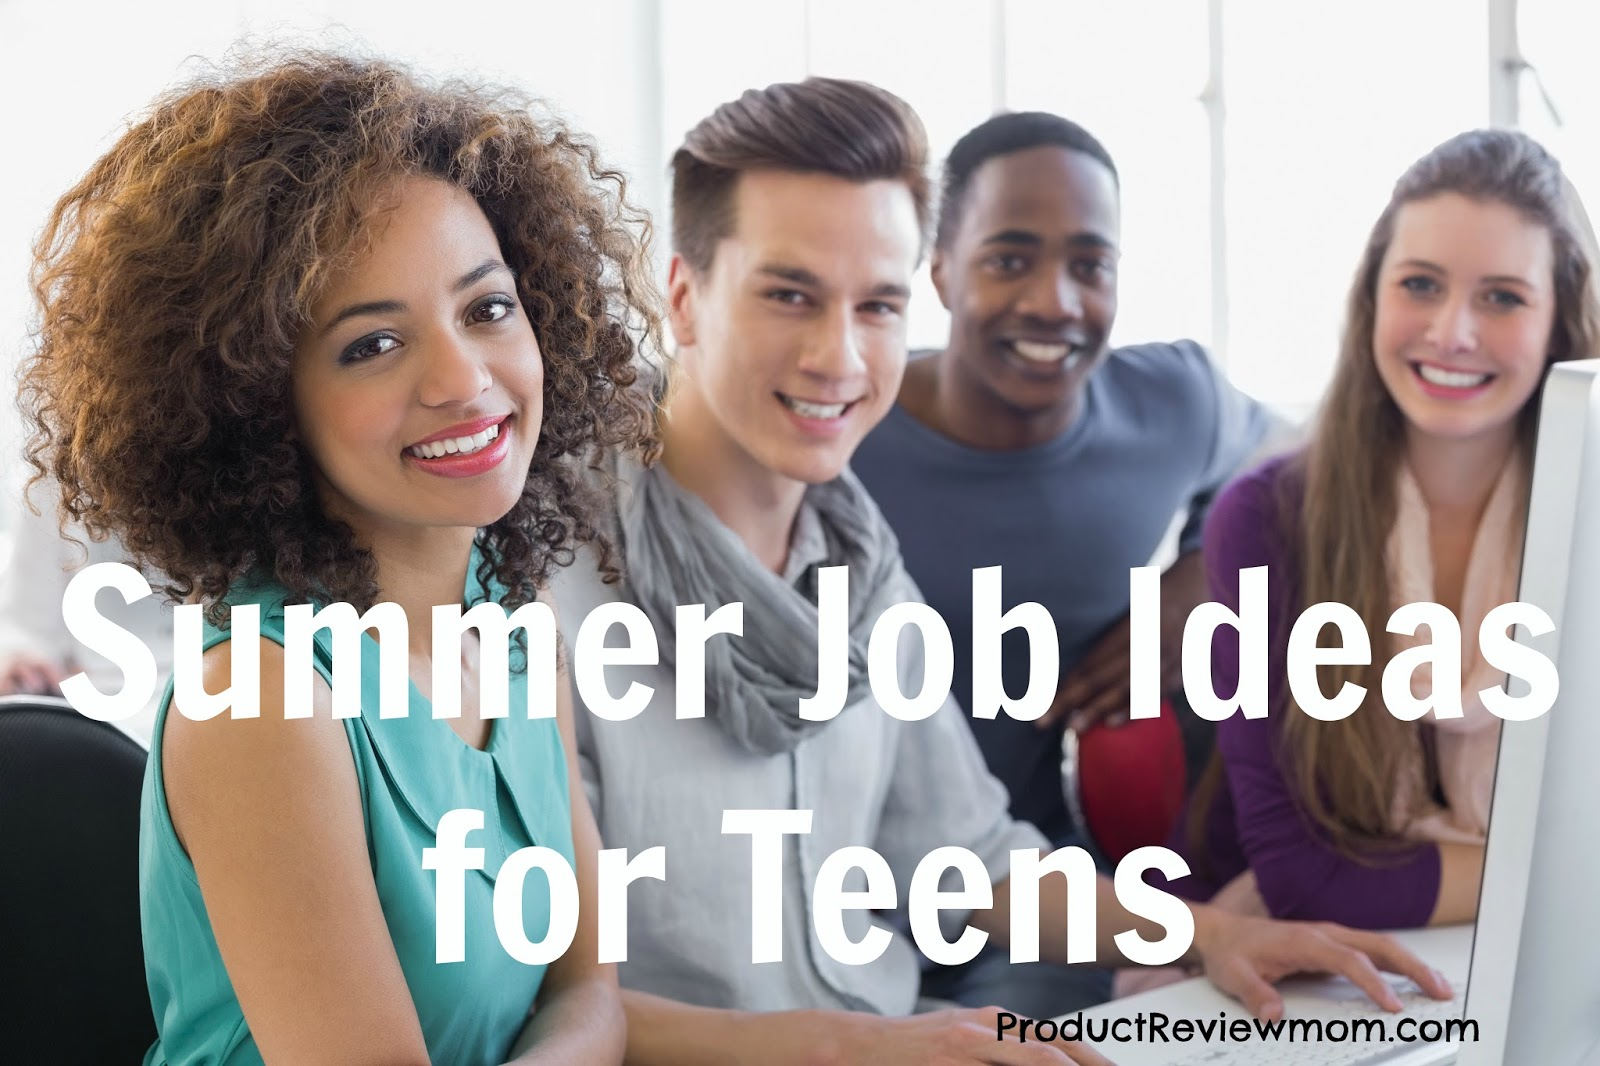 Summer Job Ideas for Teens  via  www.productreviewmom.com